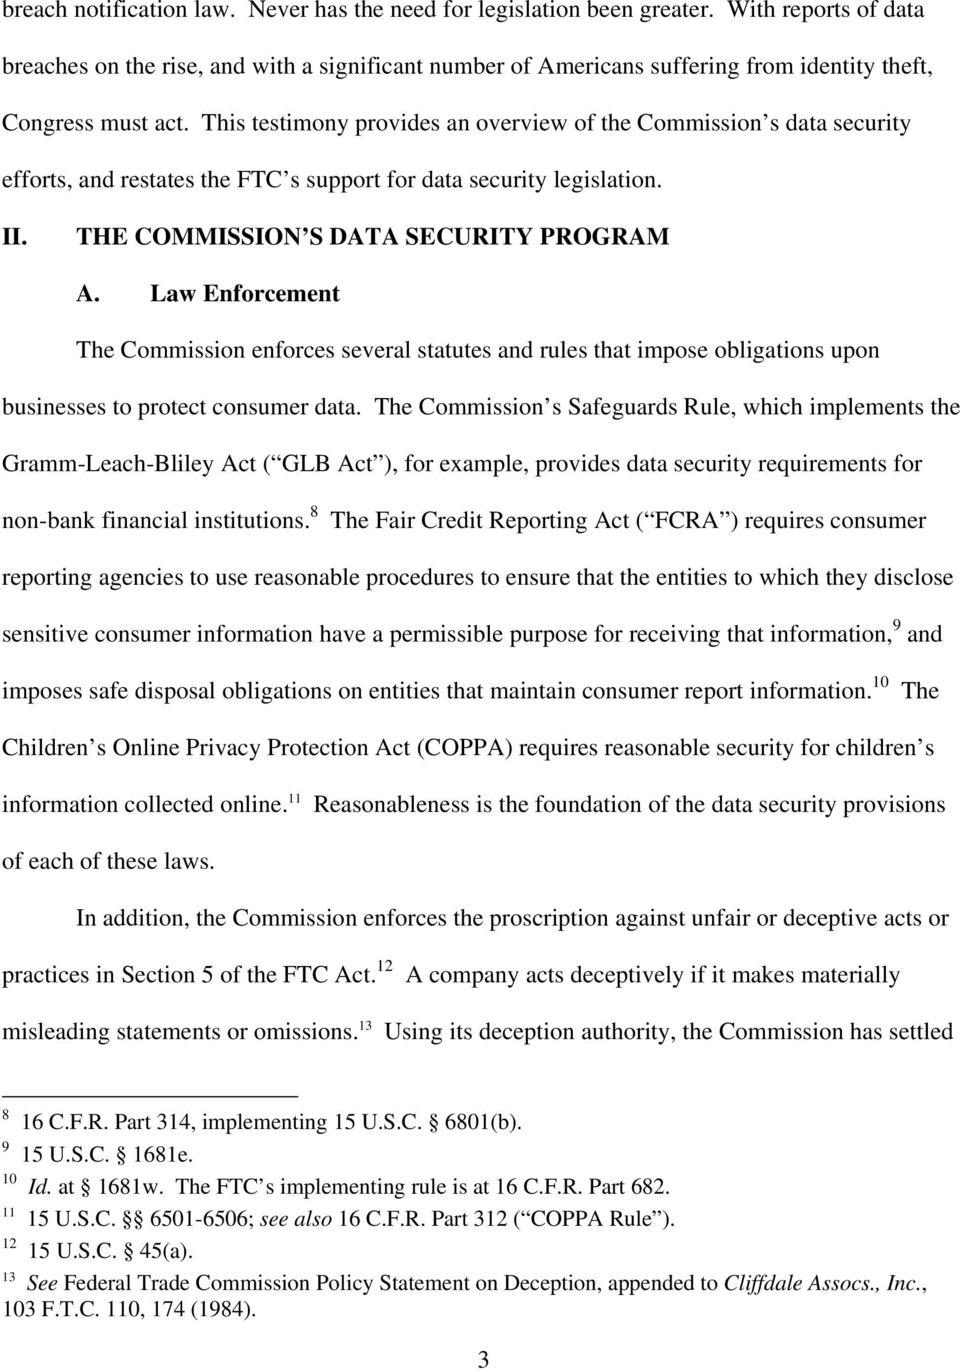 This testimony provides an overview of the Commission s data security efforts, and restates the FTC s support for data security legislation. II. THE COMMISSION S DATA SECURITY PROGRAM A.